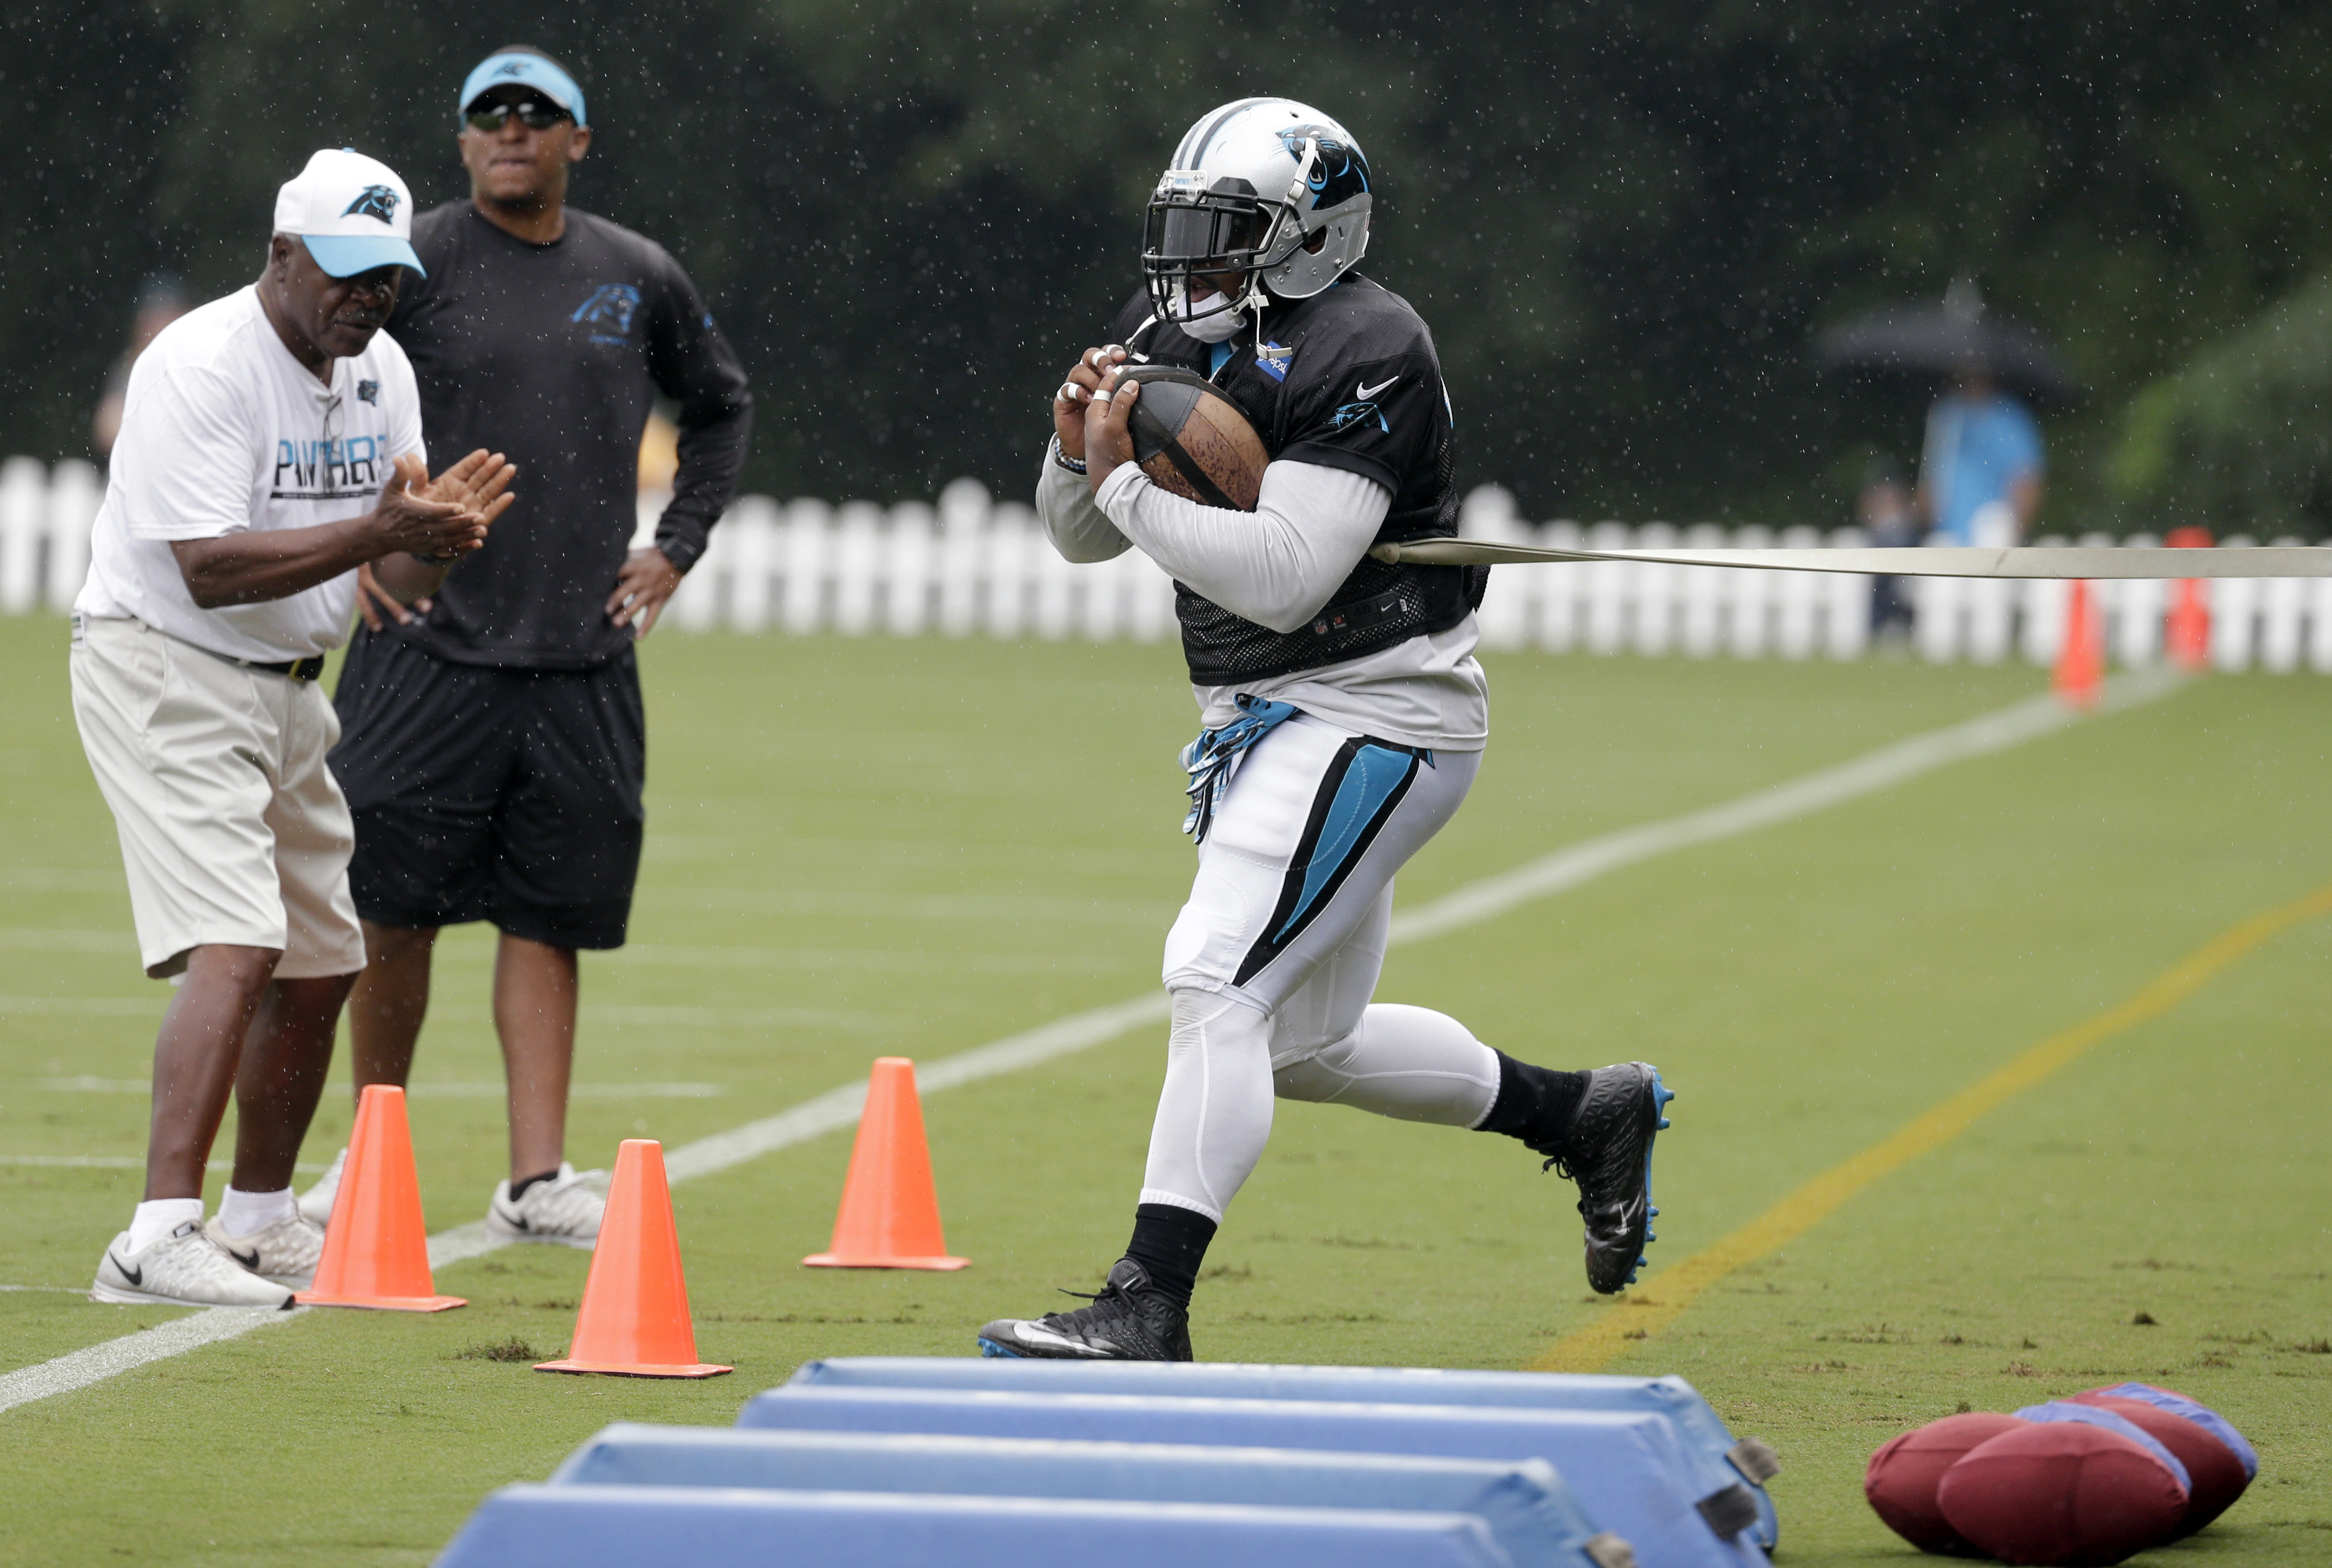 Carolina Panthers' Mike Tolbert runs a drill during an NFL training camp practice in Spartanburg, S.C., Monday, Aug. 8, 2016. (AP Photo/Chuck Burton)